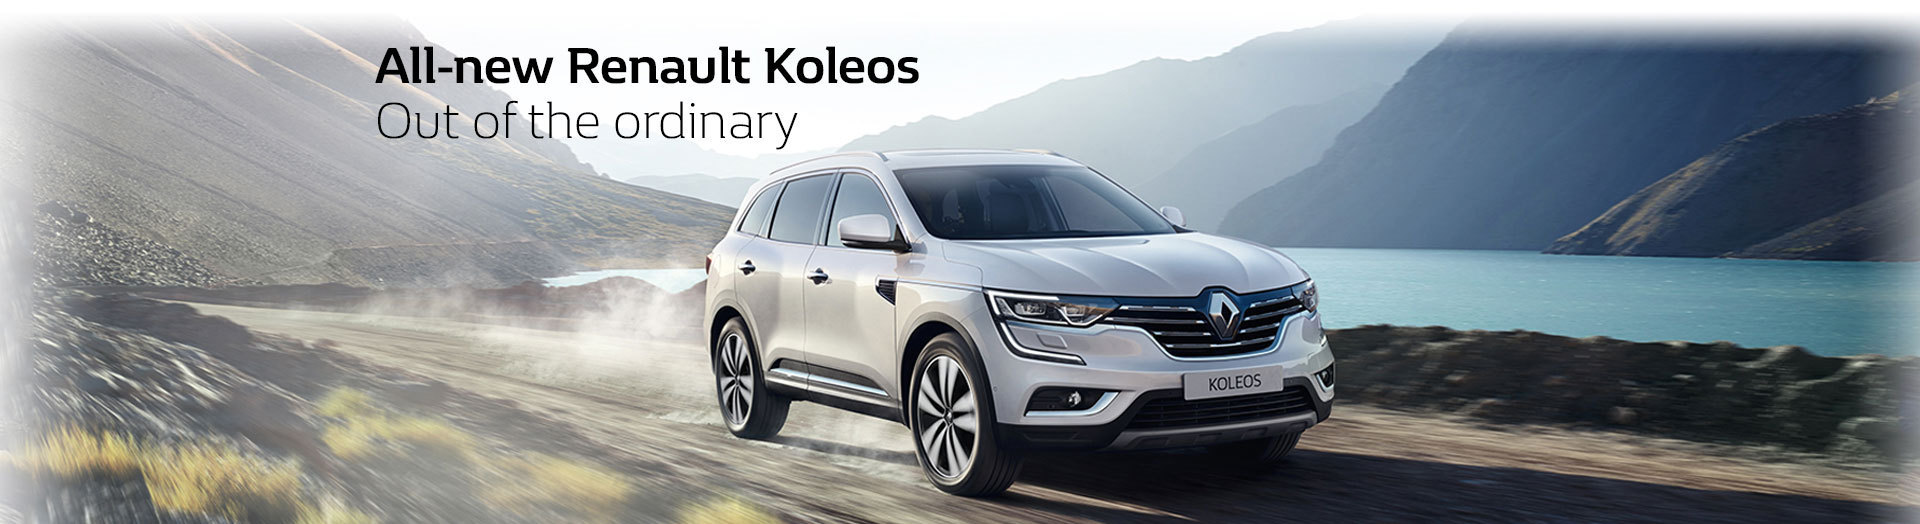 All-New Renault Koleos - Out of the Ordinary